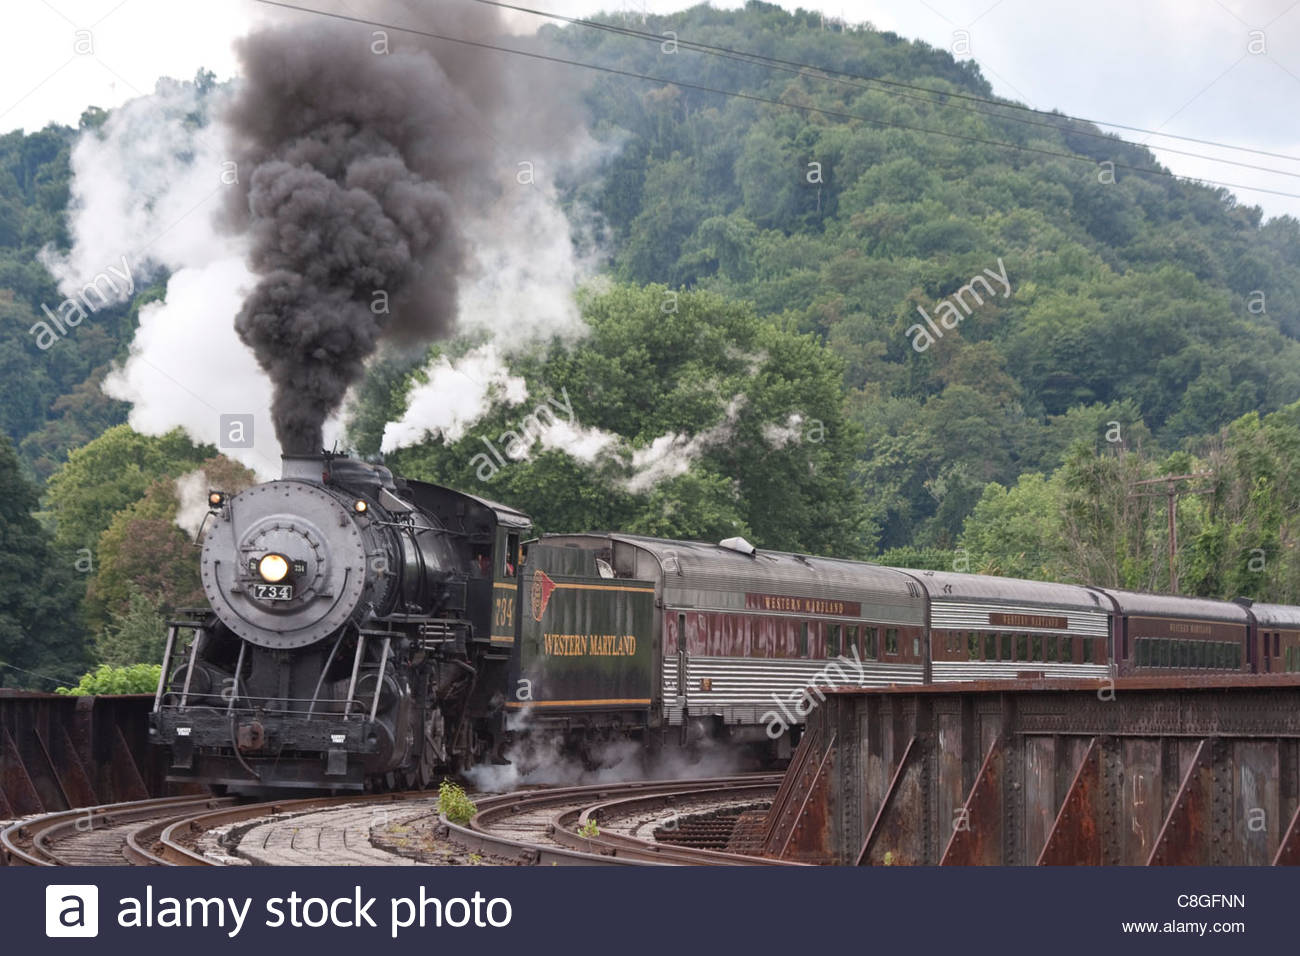 Western Maryland Scenic Railraod 2-8-0 #734 crossing trestle into depot. - Stock Image